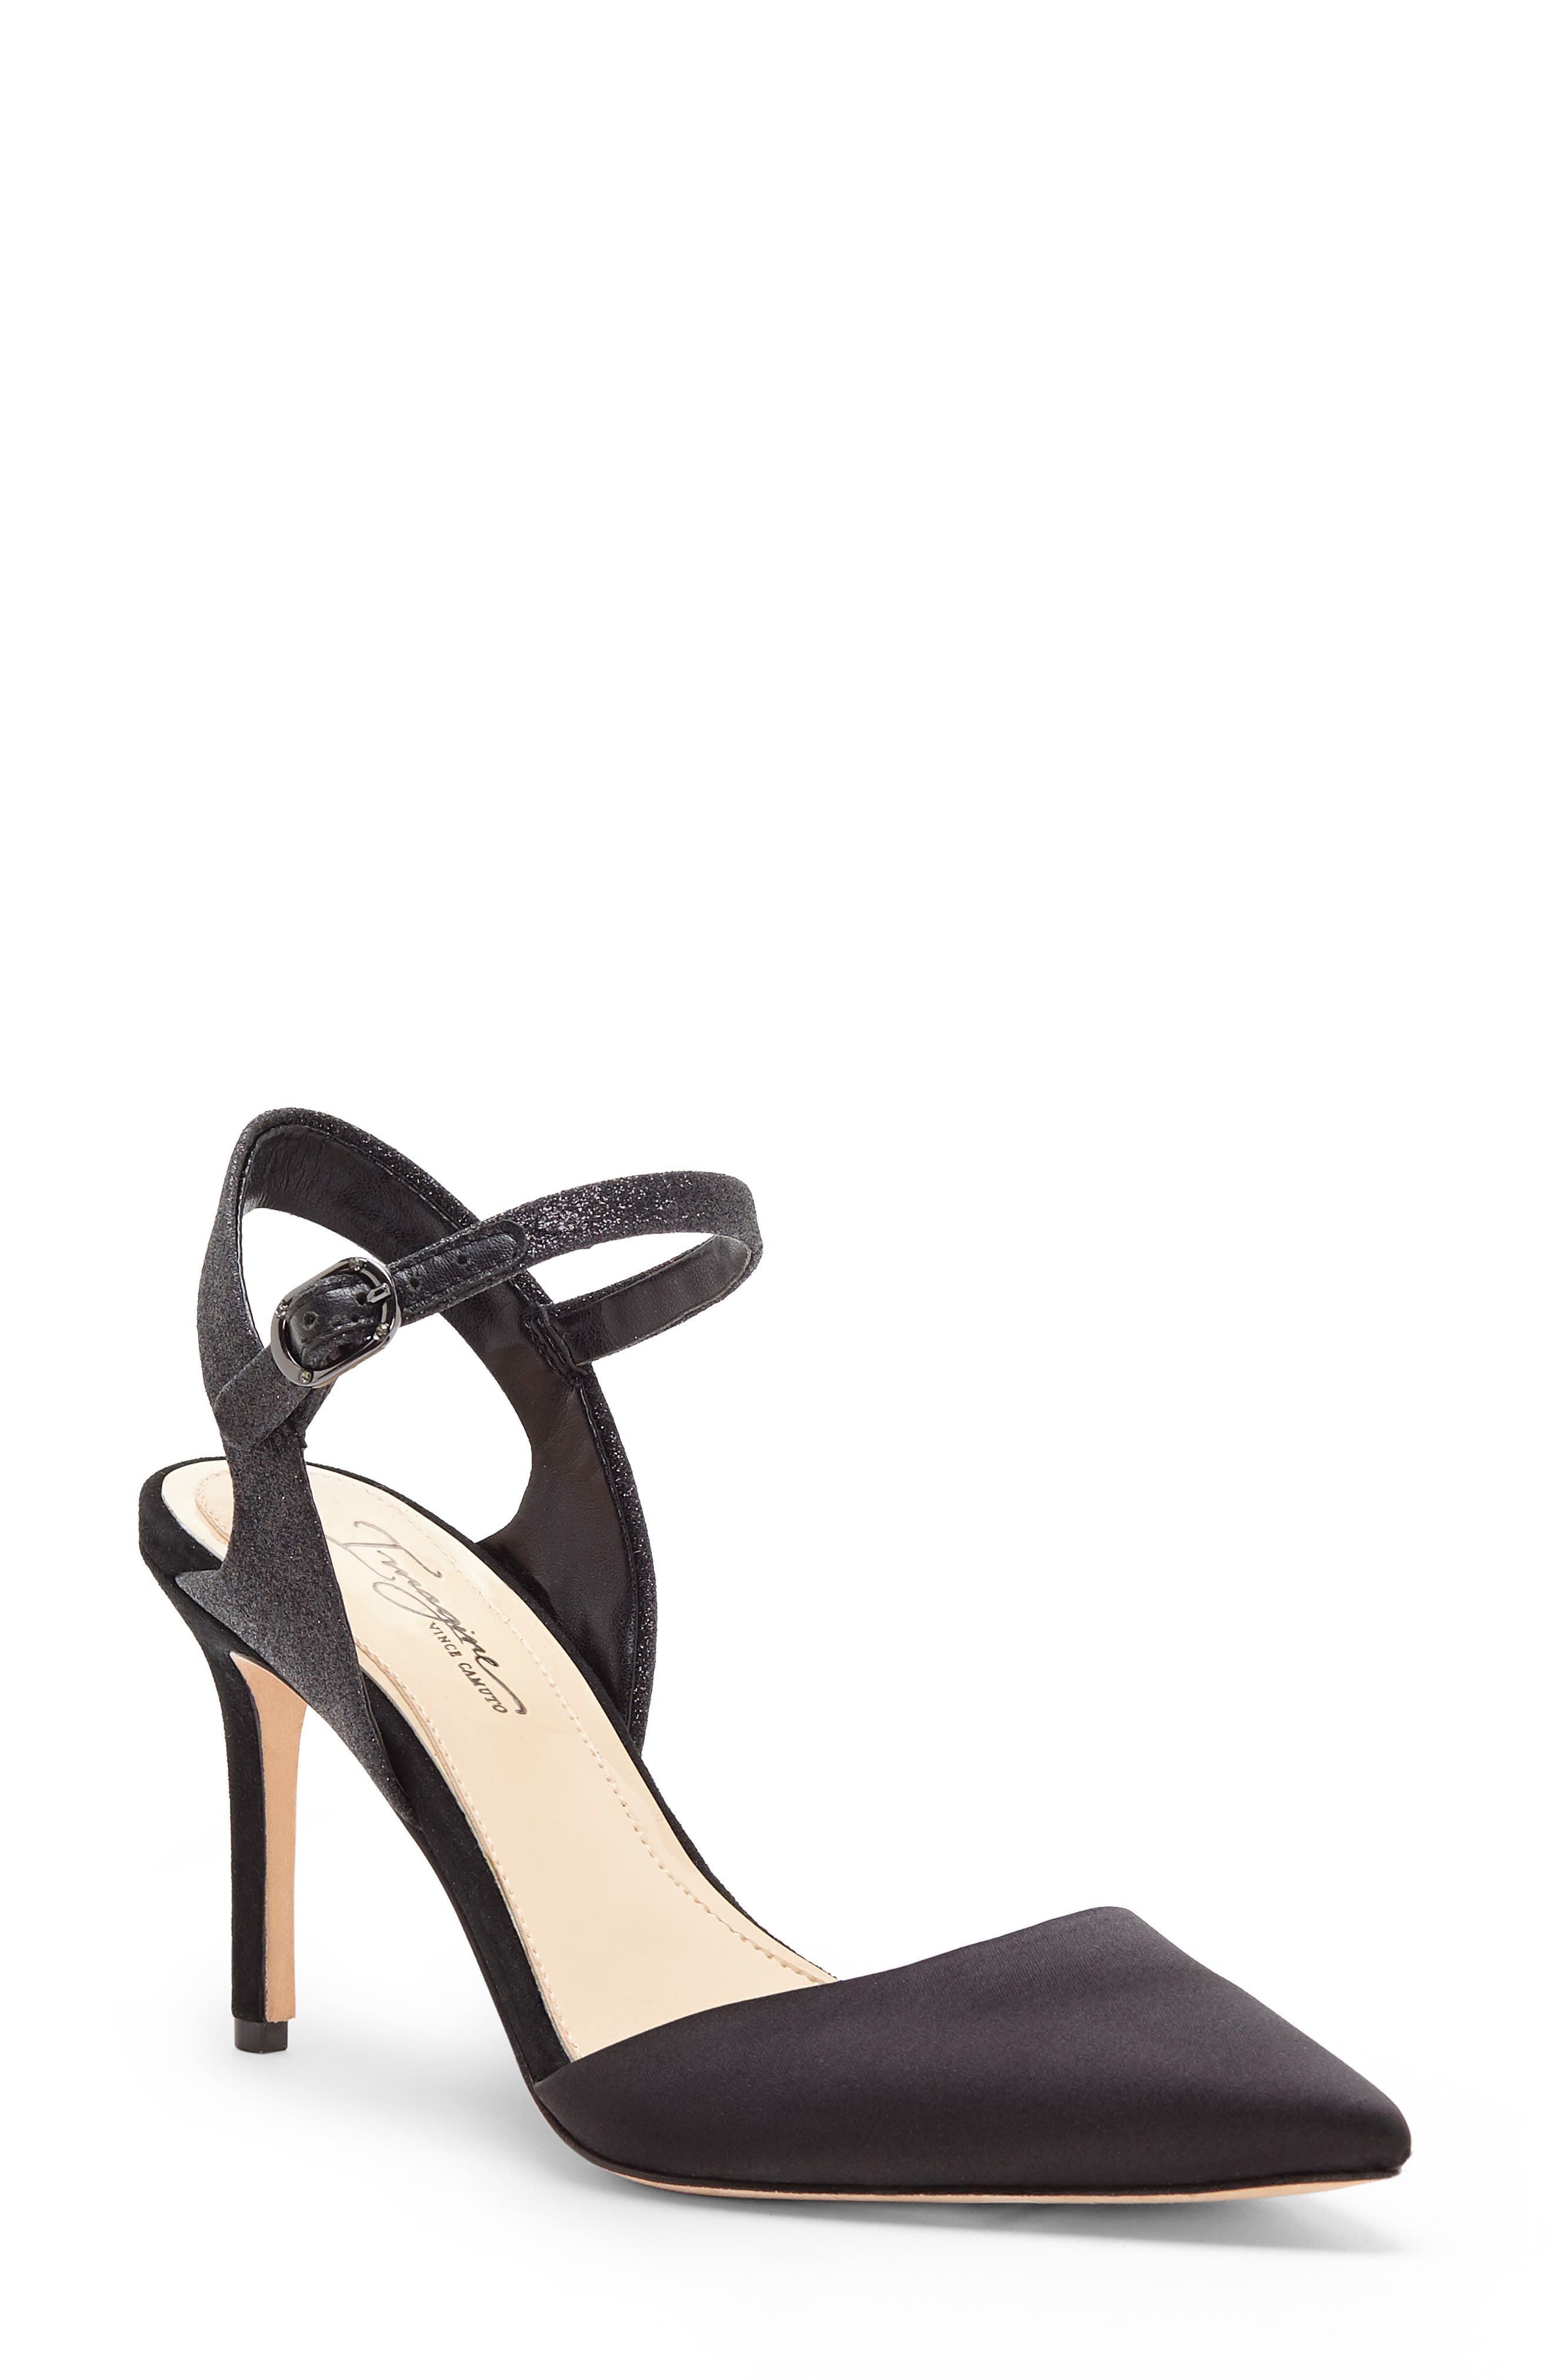 a8dd9137d0f Imagine By Vince Camuto Glora Pointy Toe Pump